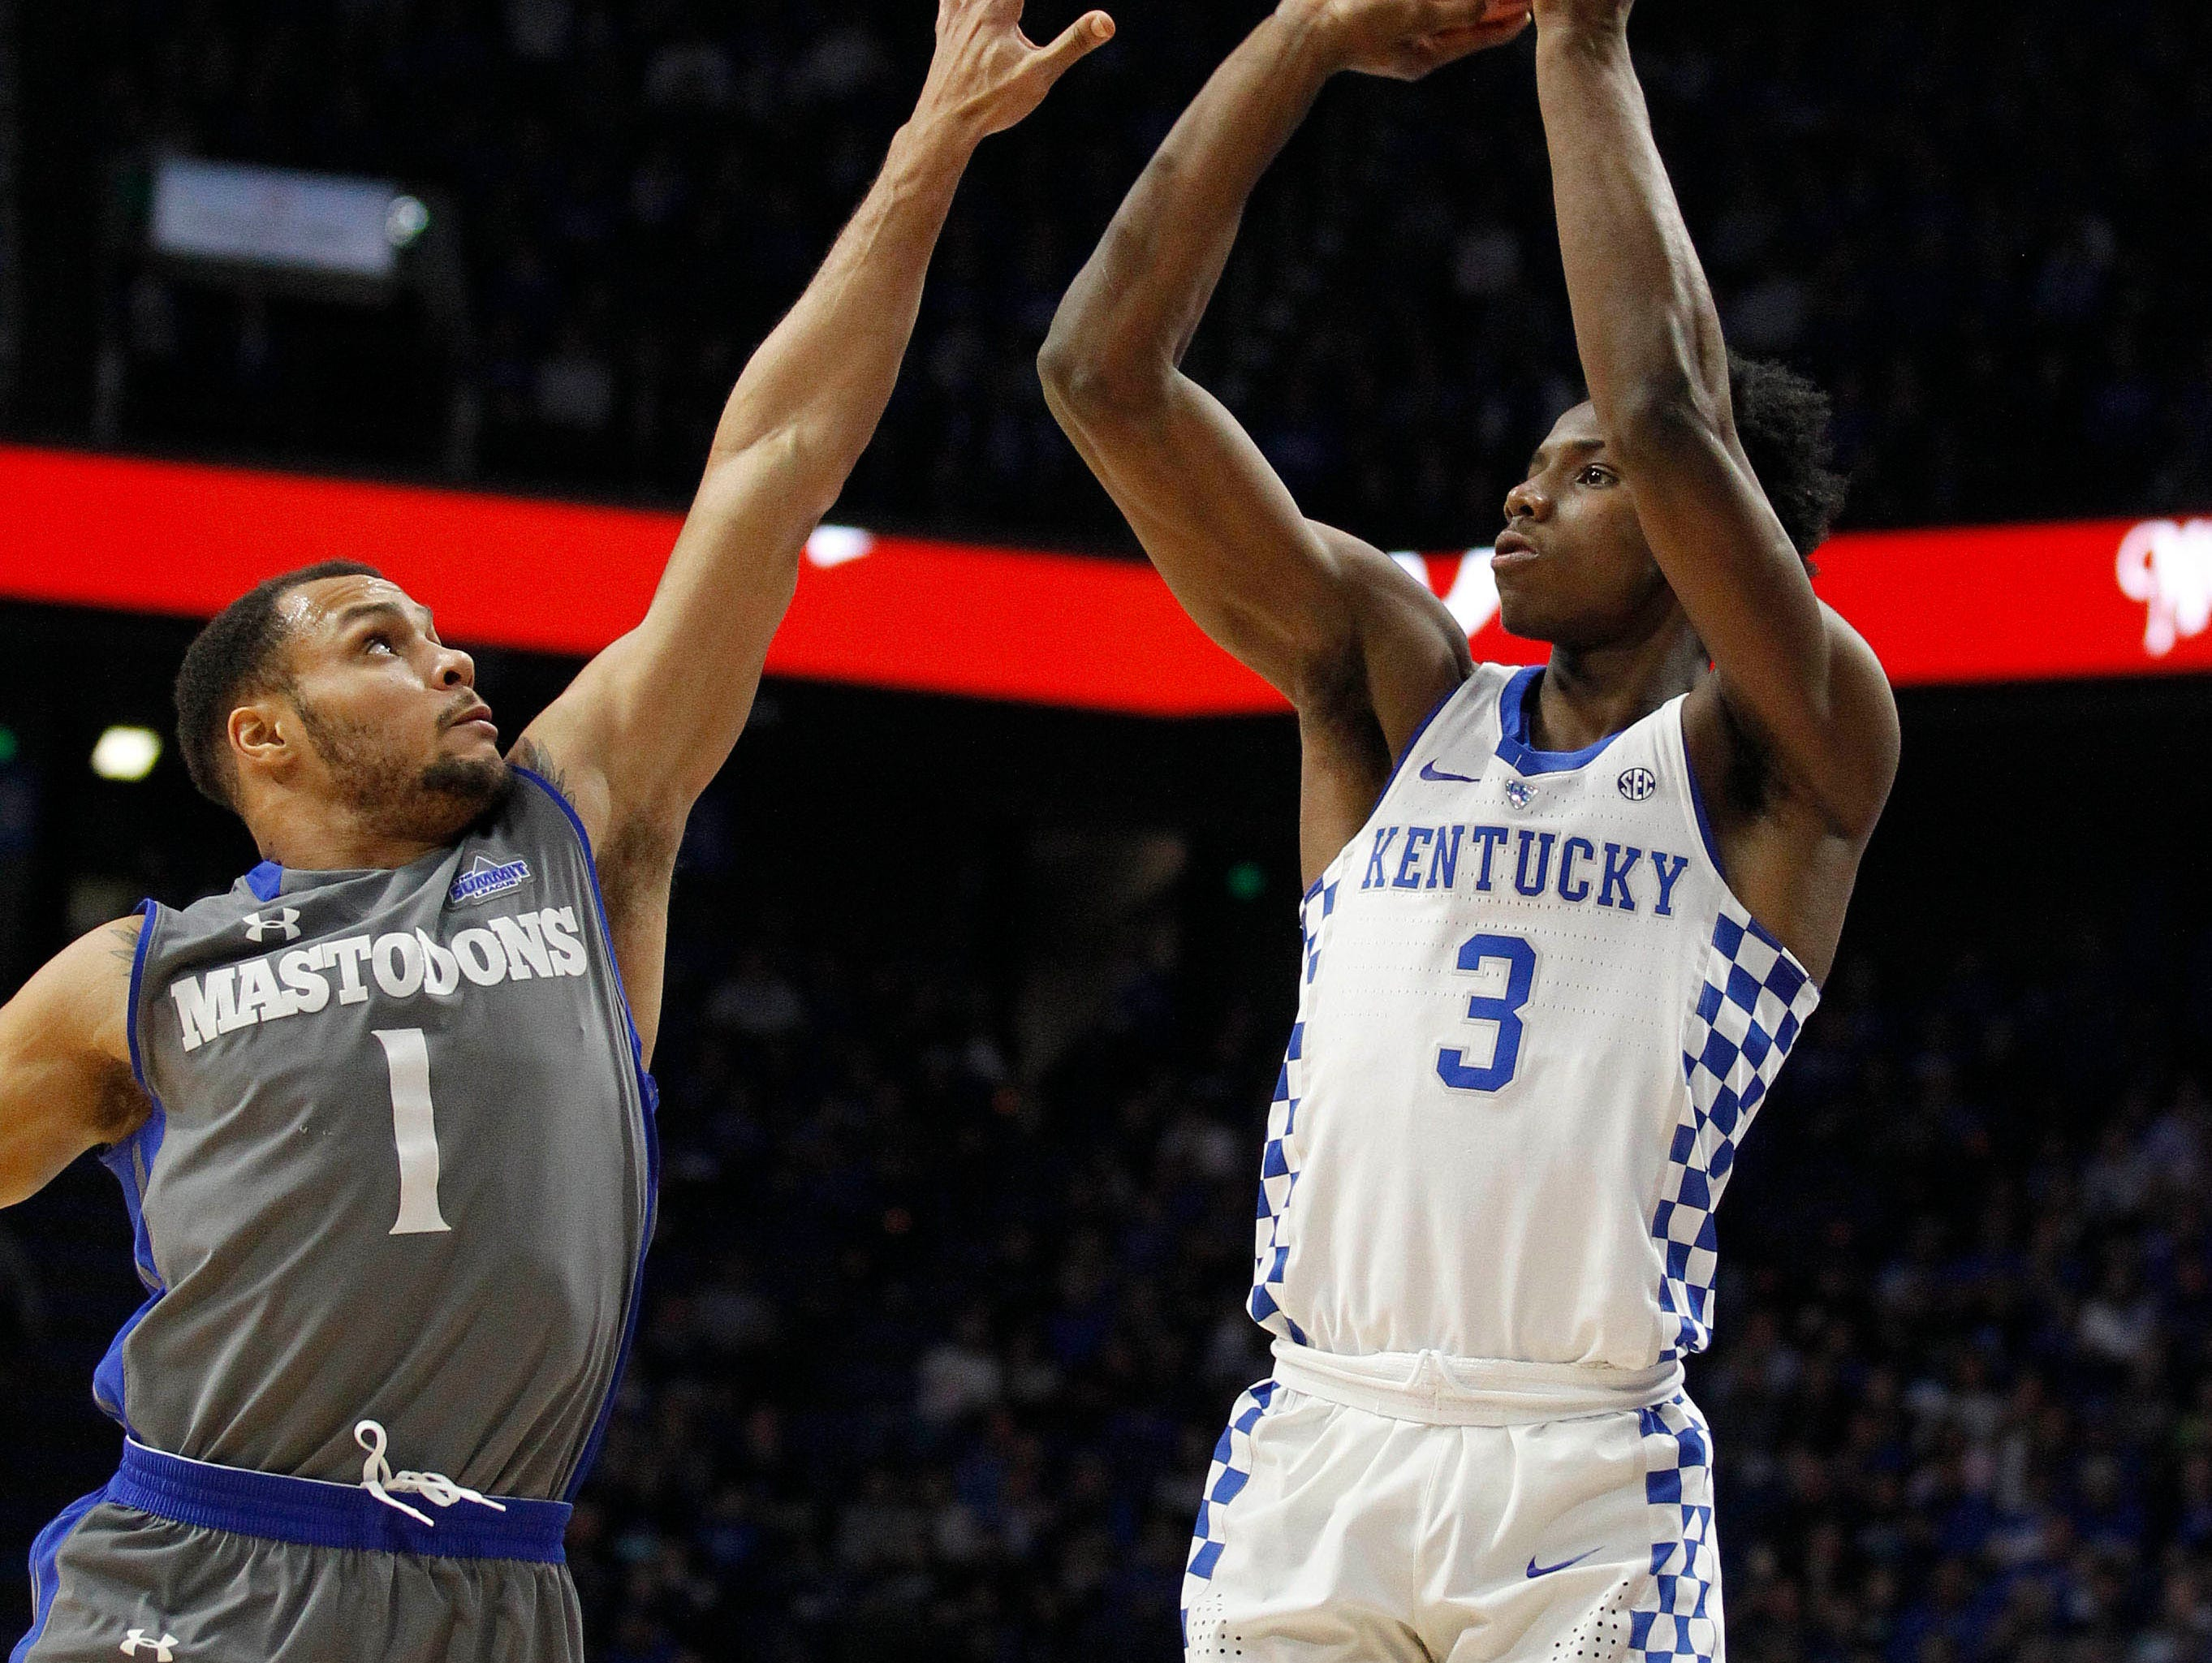 Uk Basketball: How To Watch UK Basketball Play UIC: Game Time, TV Channel